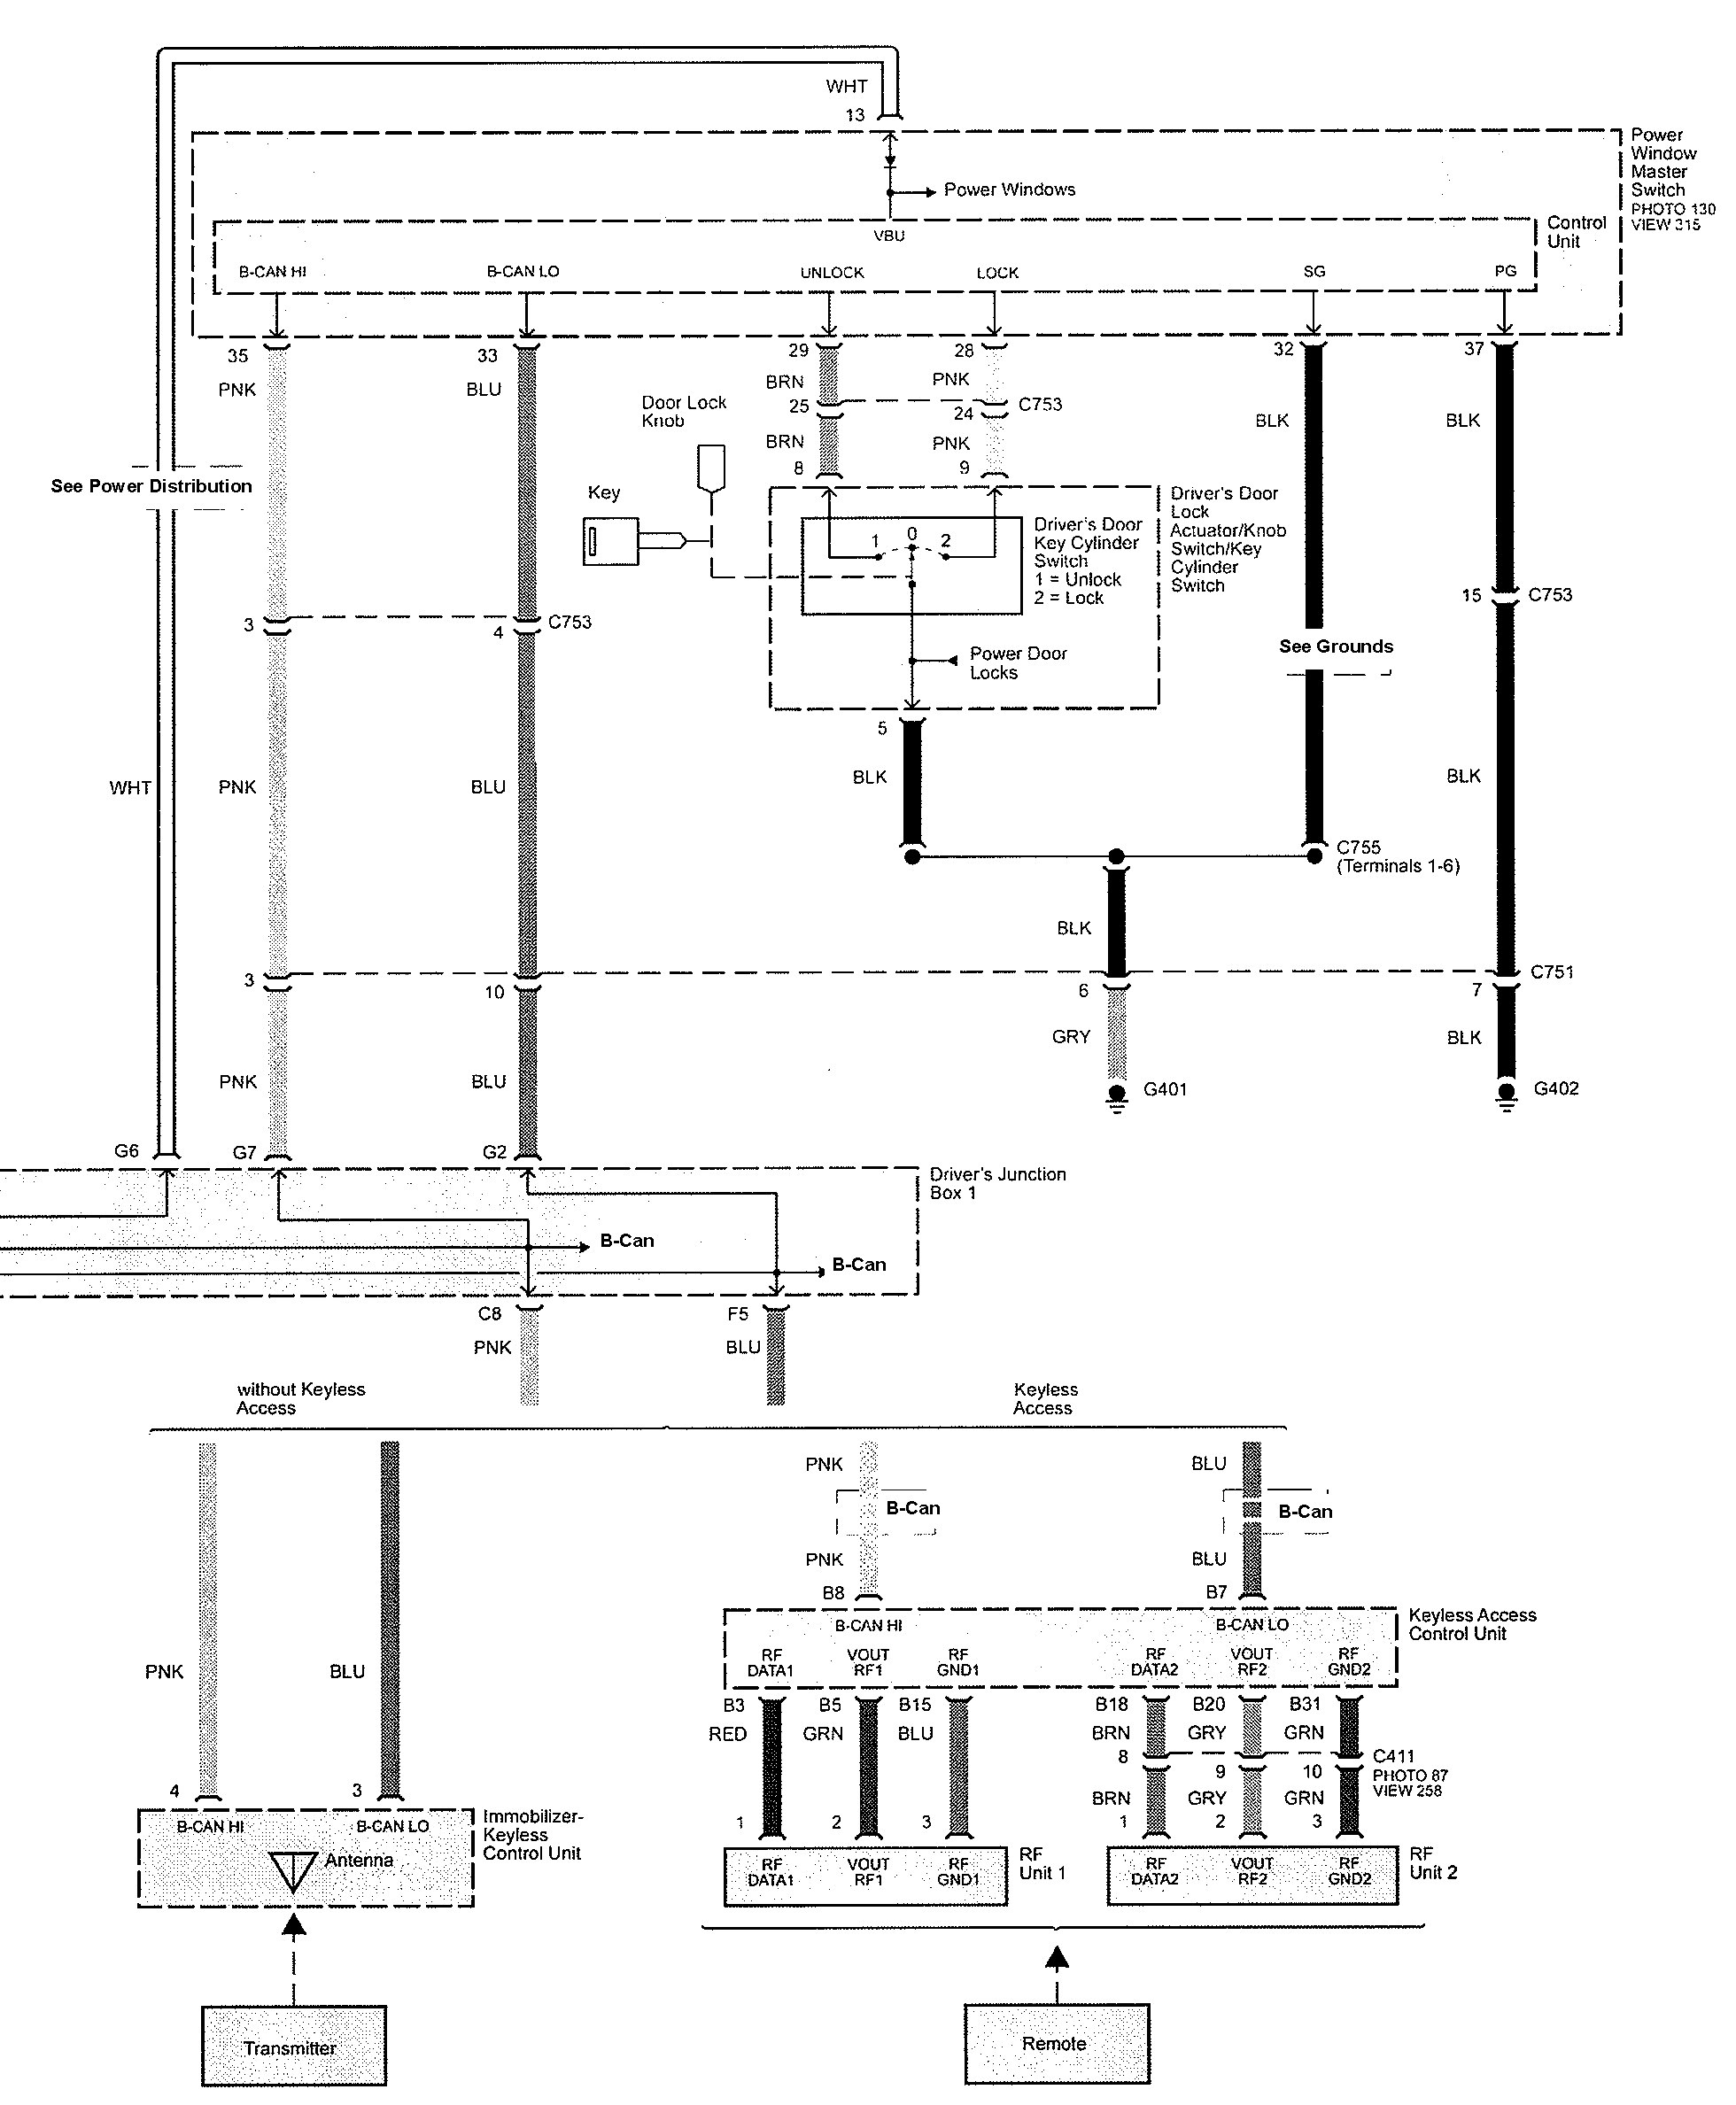 Acura Tl 2009 2010 Wiring Diagrams Illuminated Entry Diagram Part 5